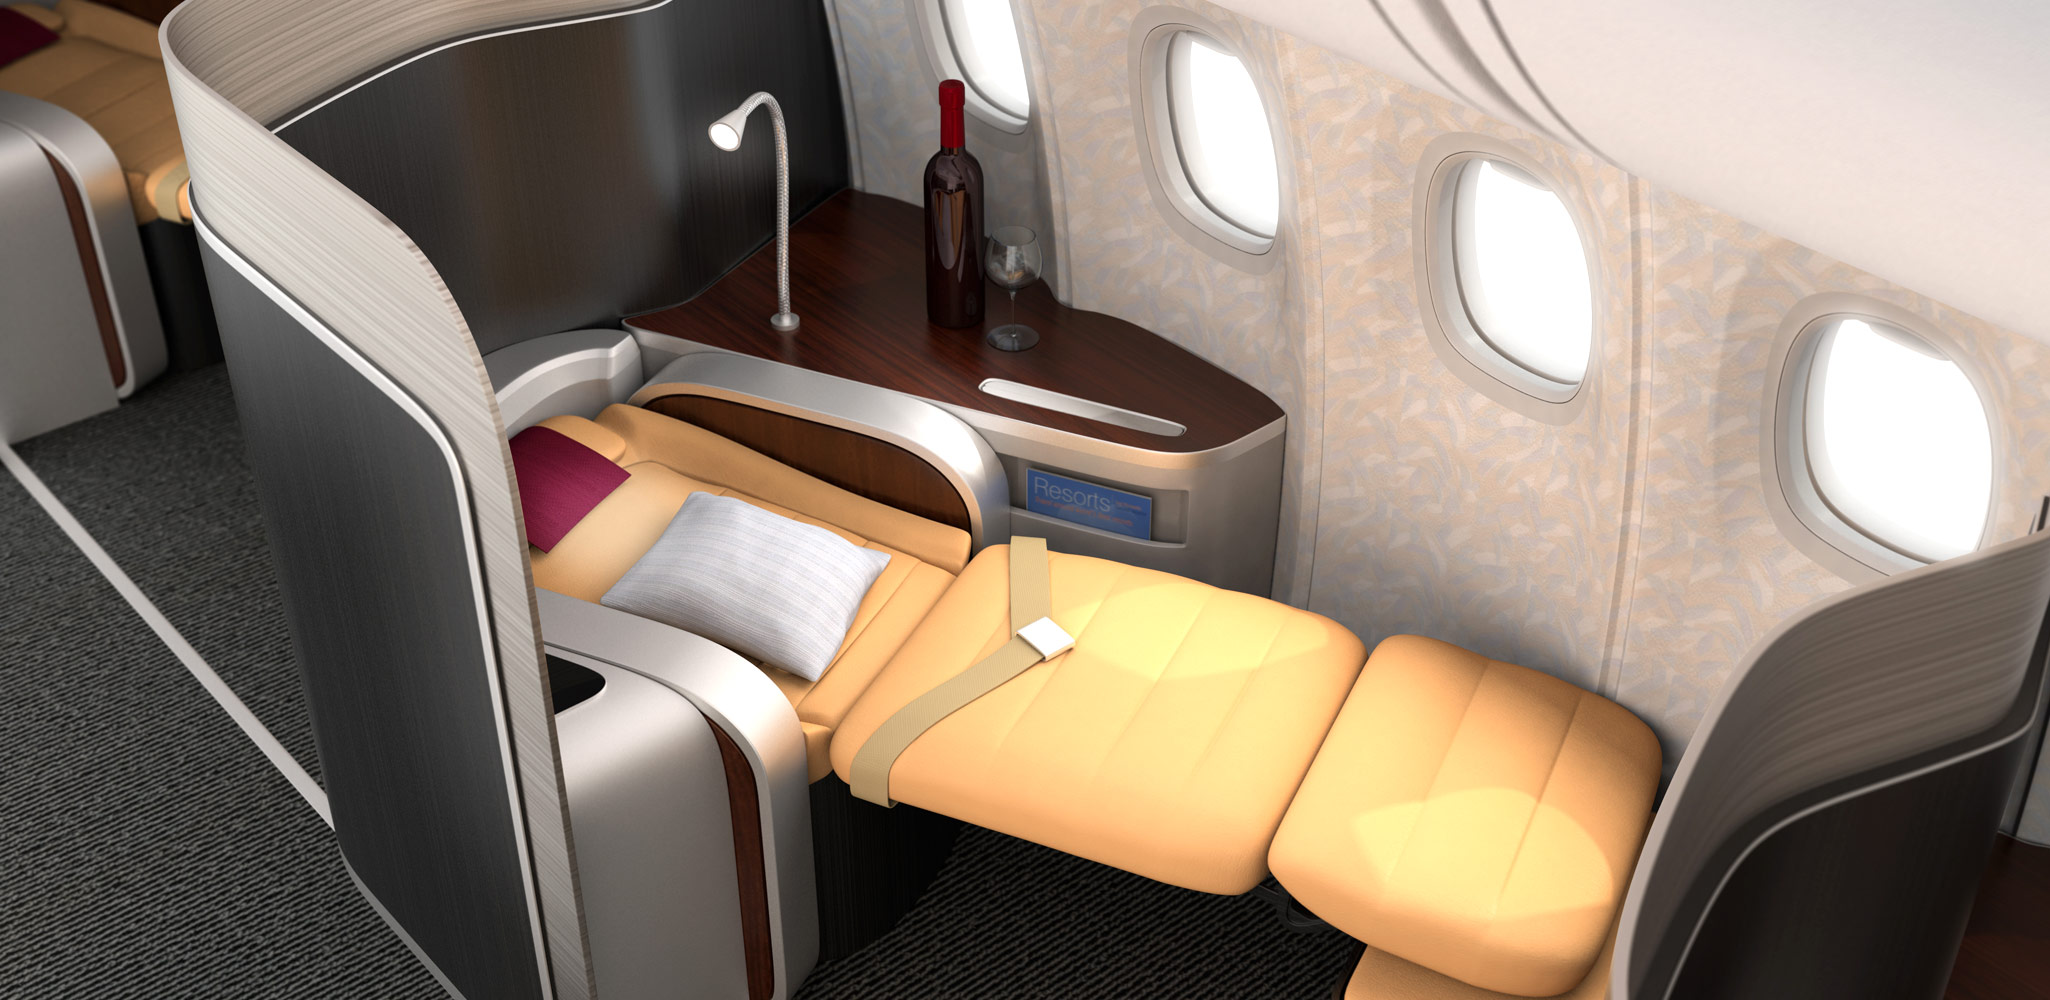 travel in comfort in Business Class